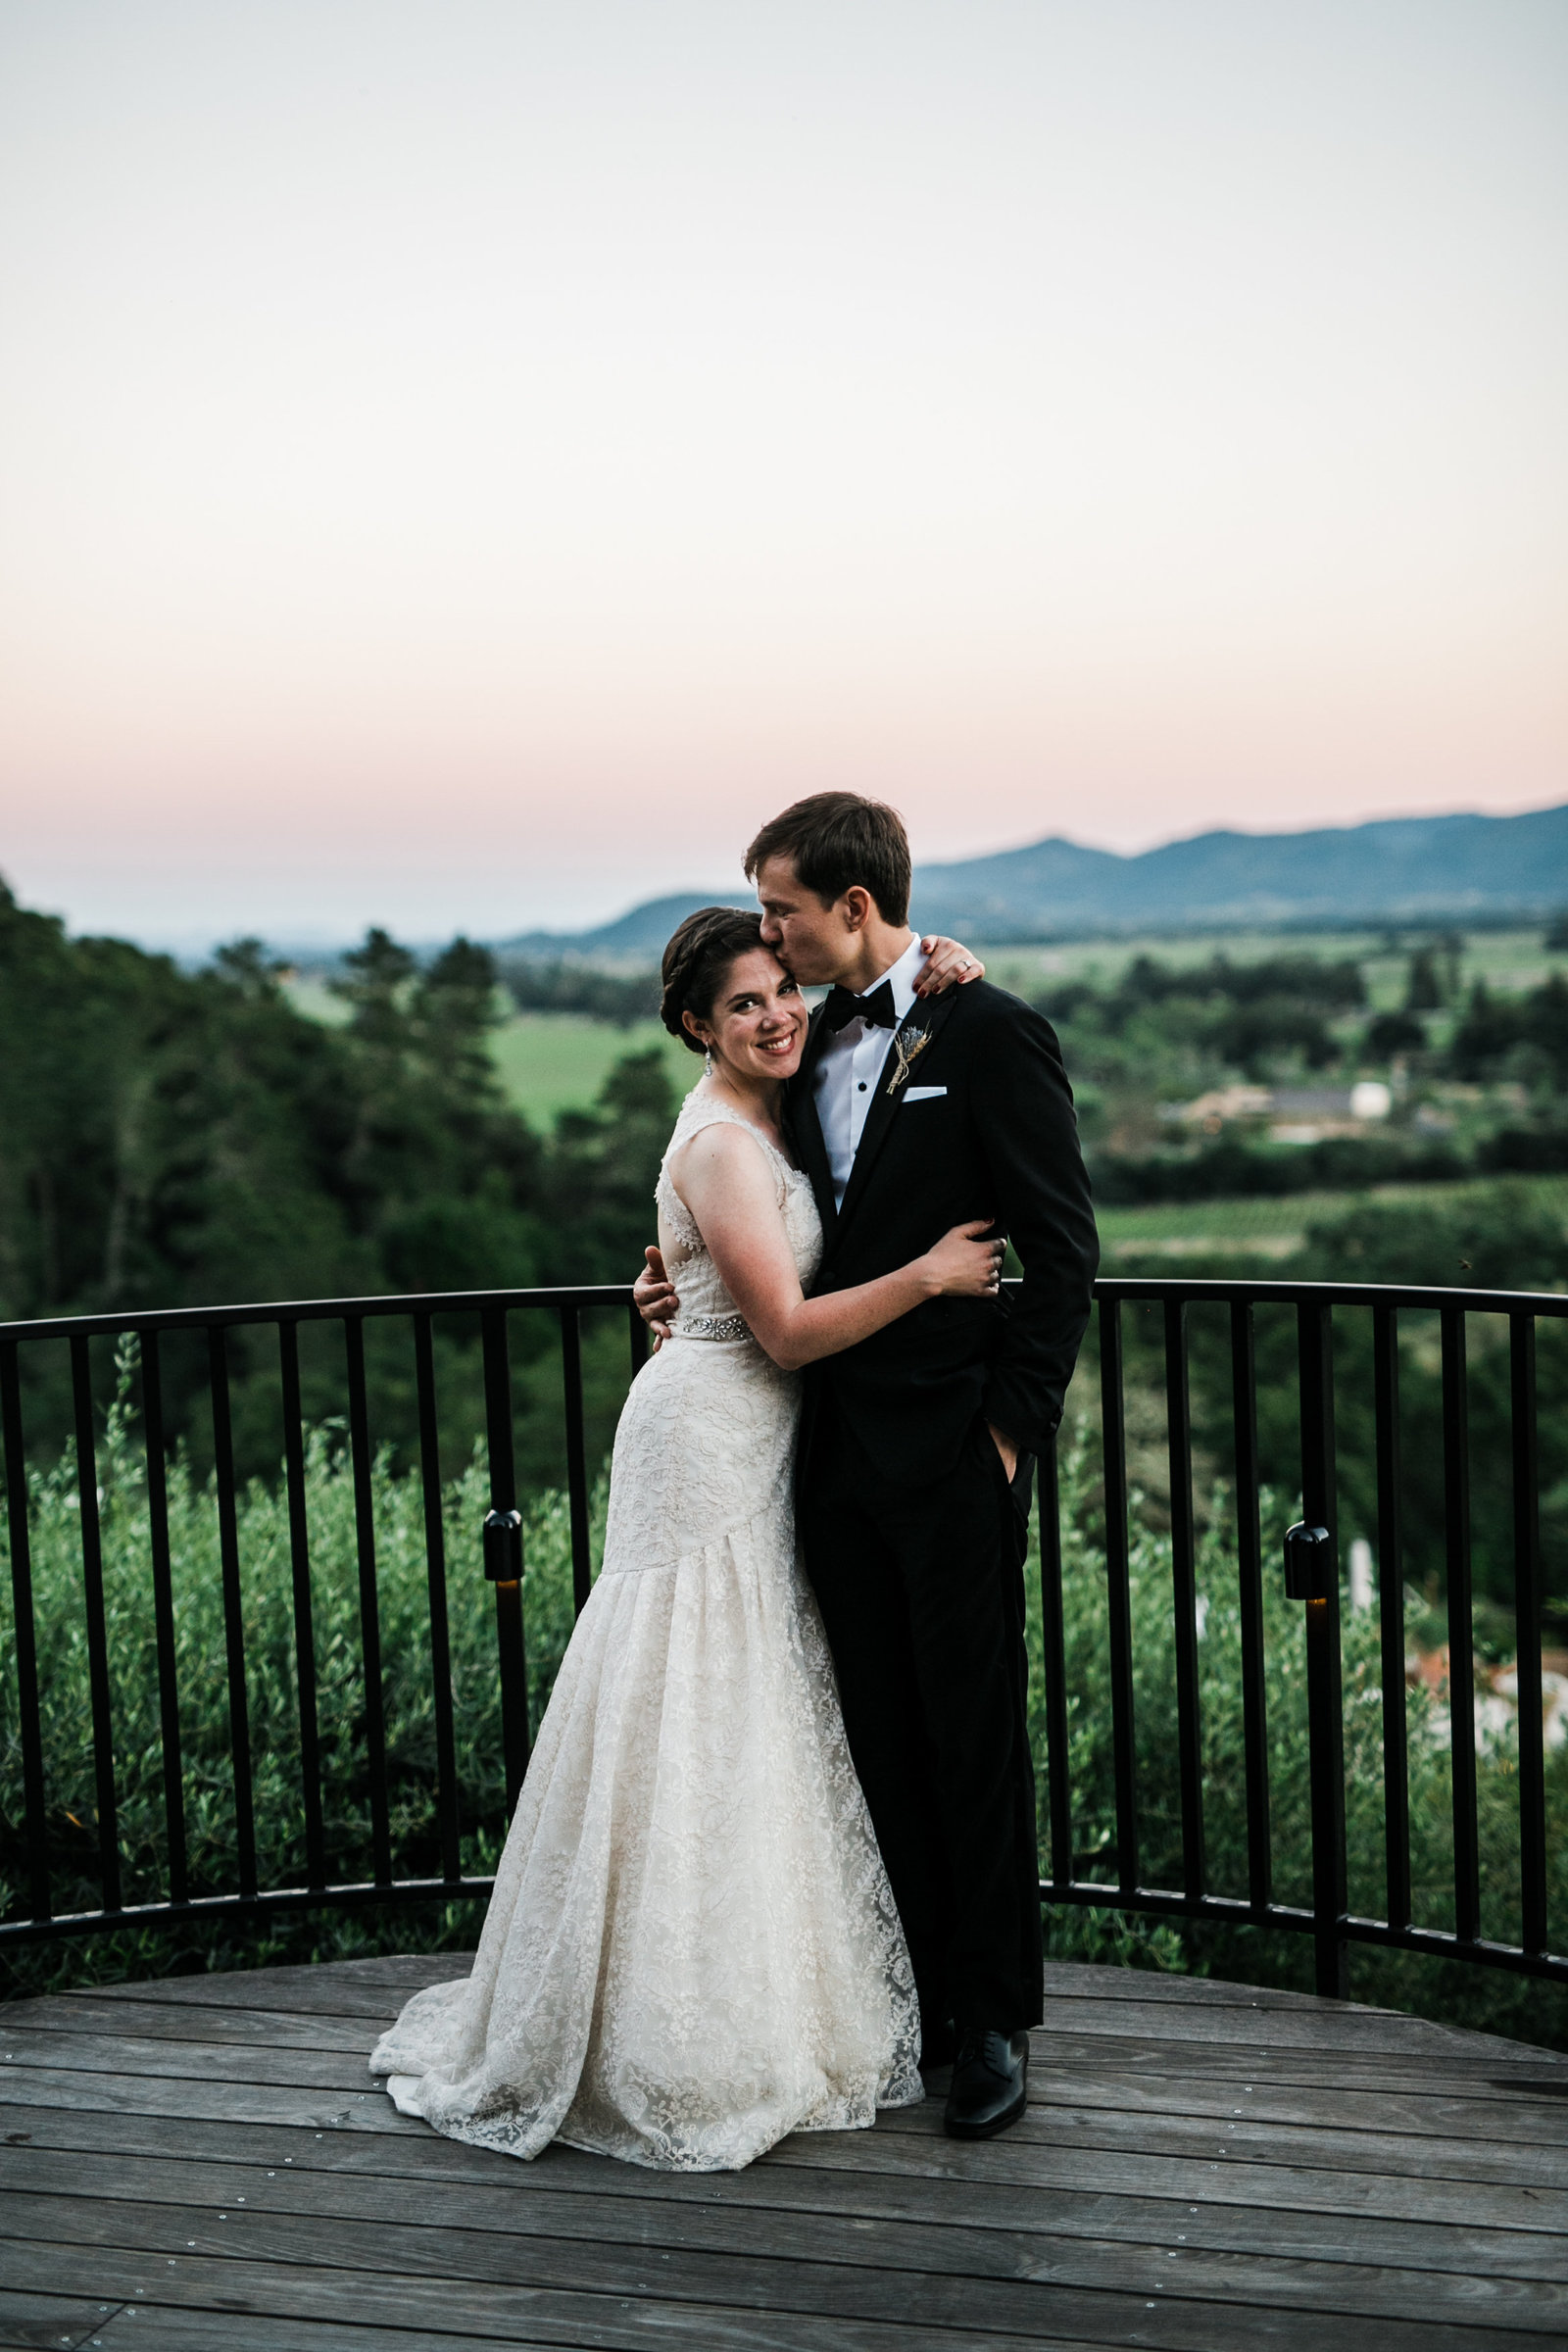 Ryan Greenleaf_Northern California Wedding Photographer_011Caitlin Joe Ref Images-14